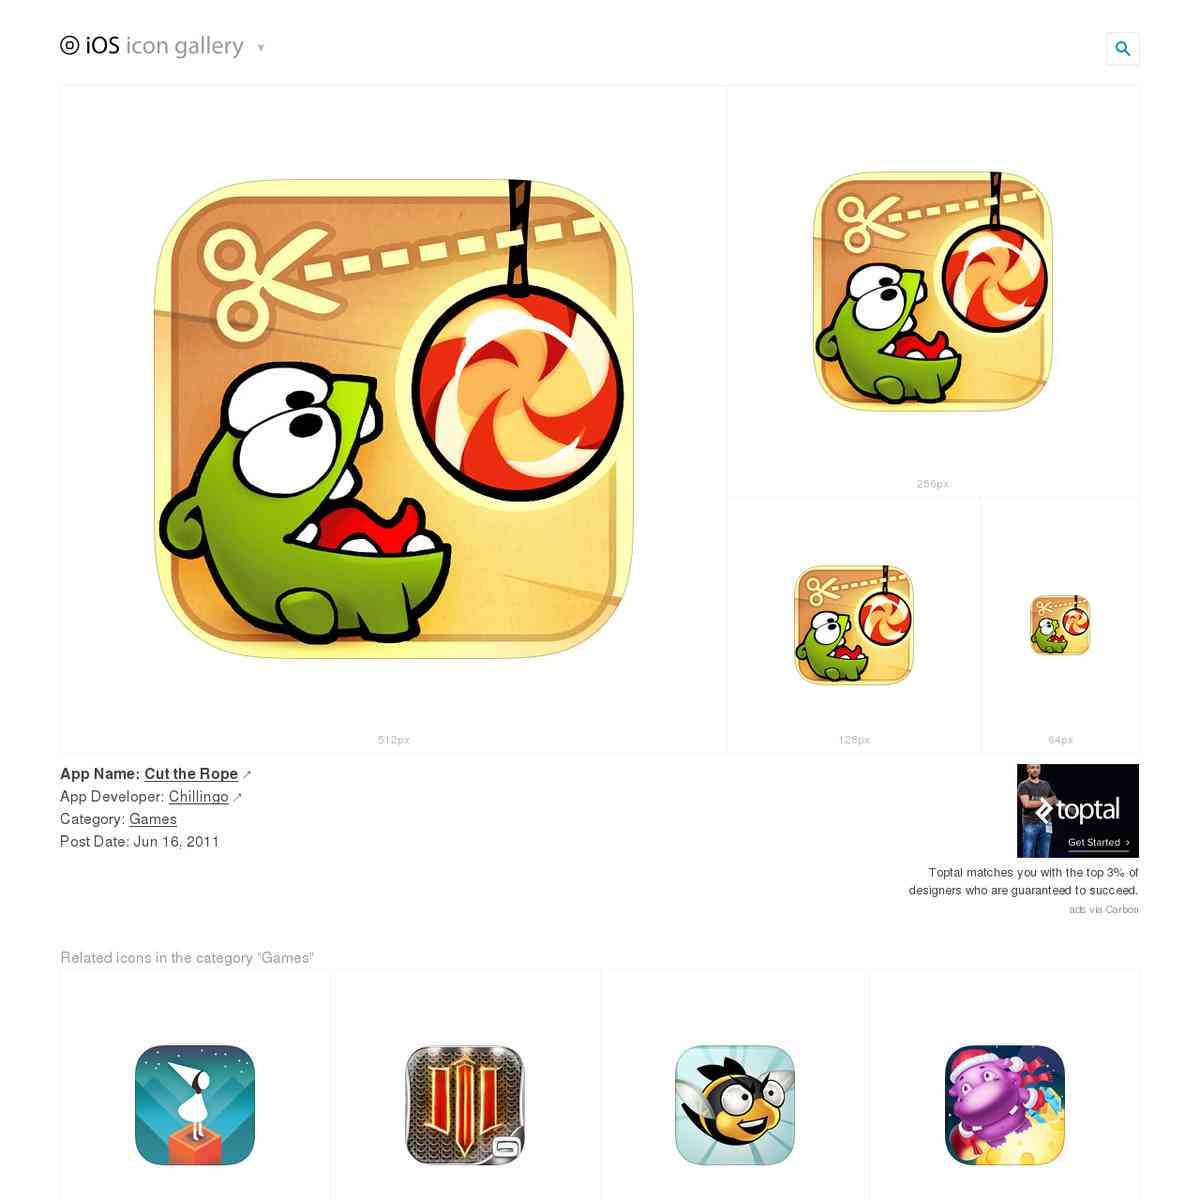 iosicongallery.com/games/cut-the-rope/